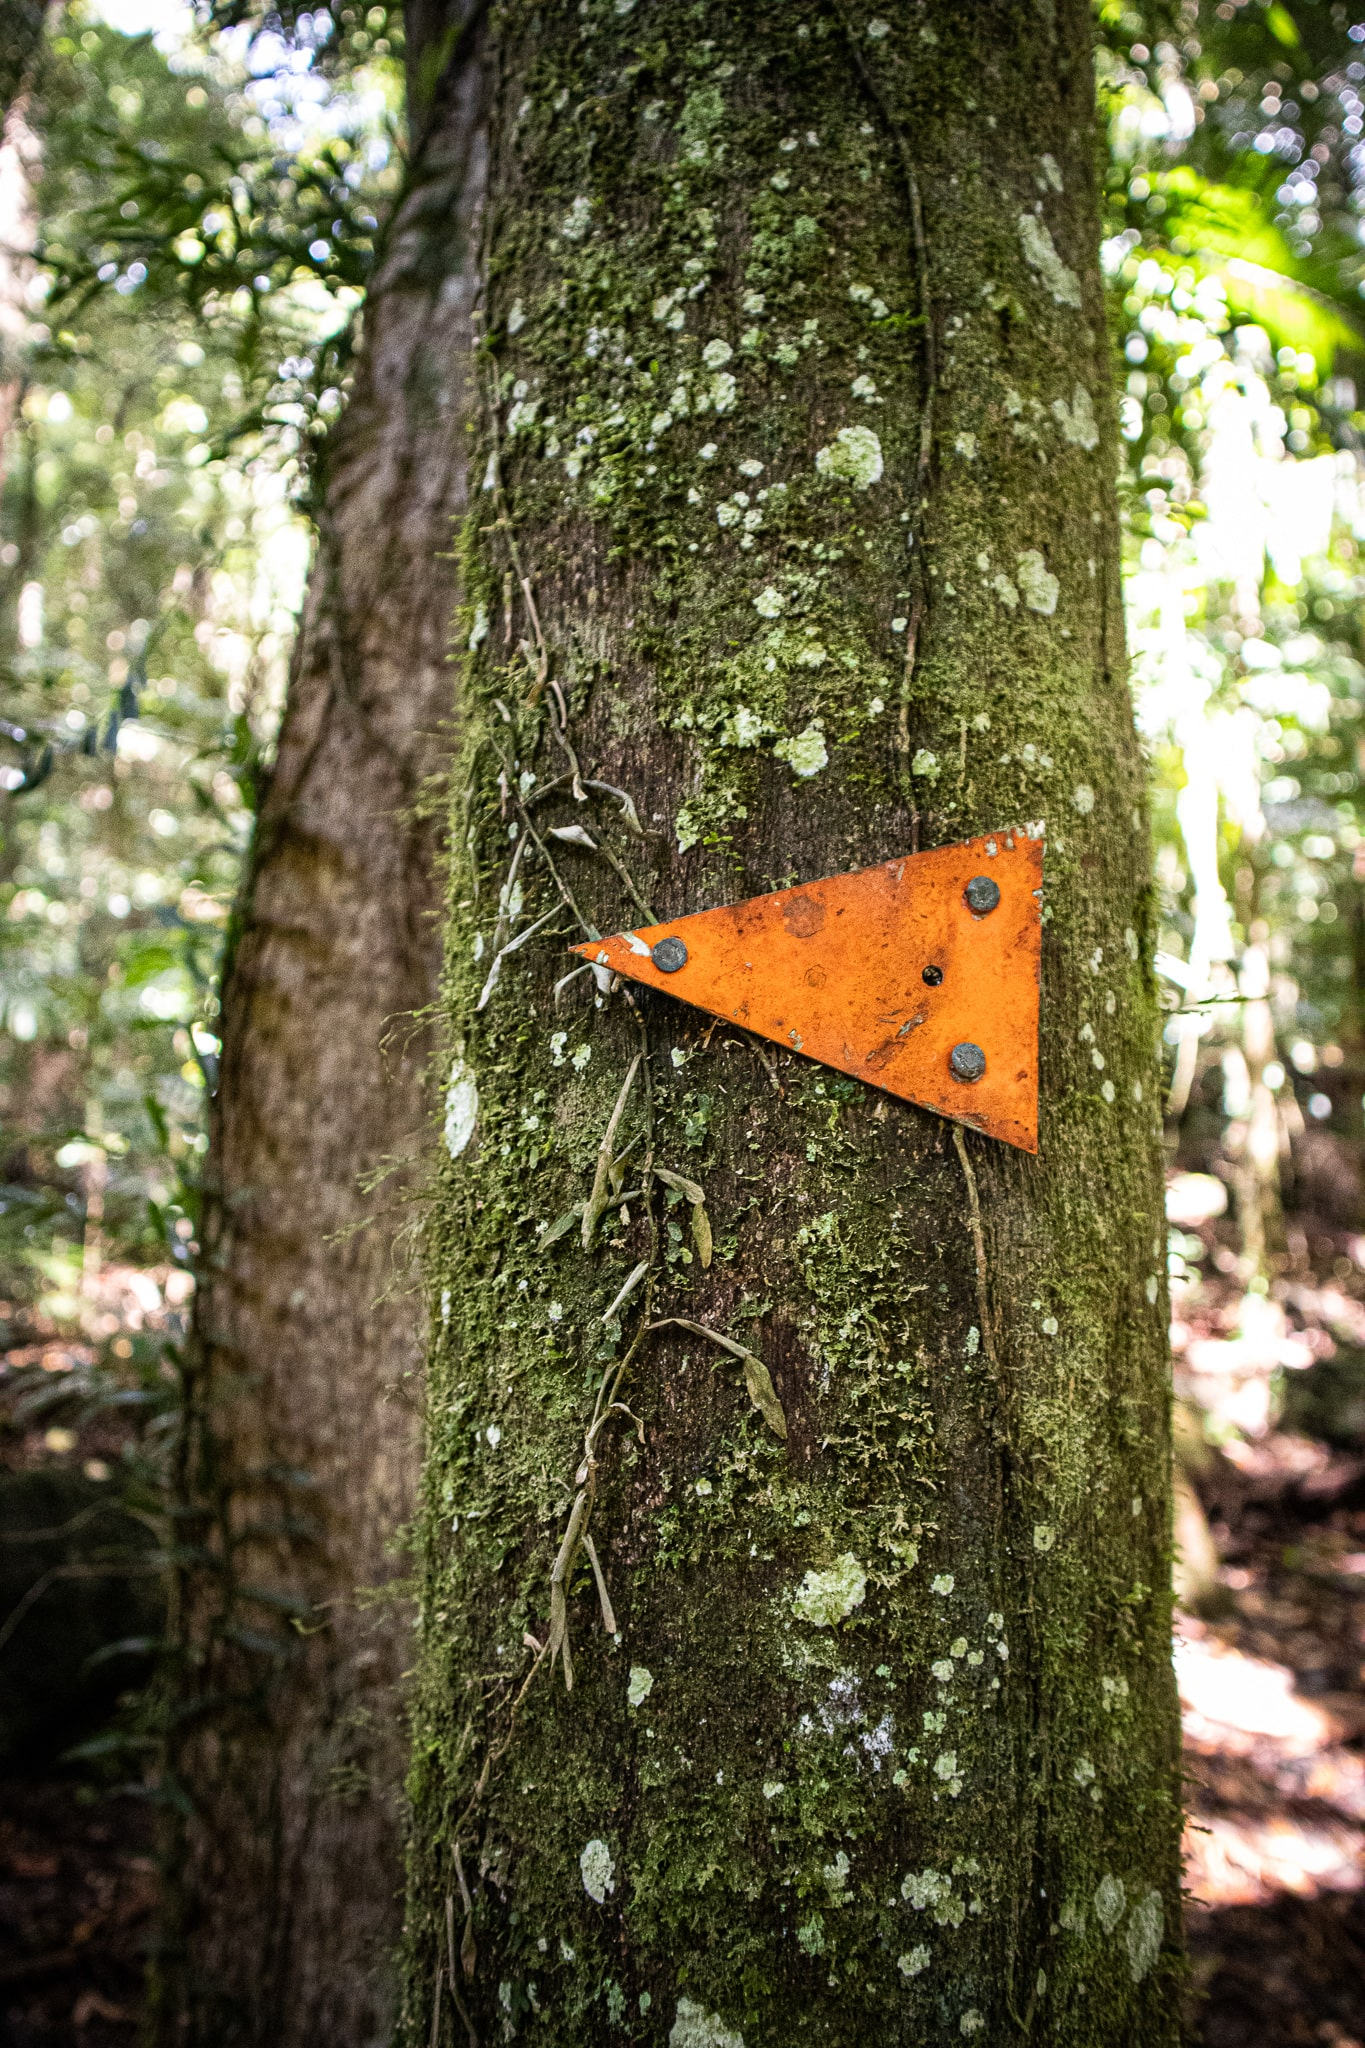 Orange arrow marker nailed to a tree in the rainforest indicating what direction to take for the hiking trail